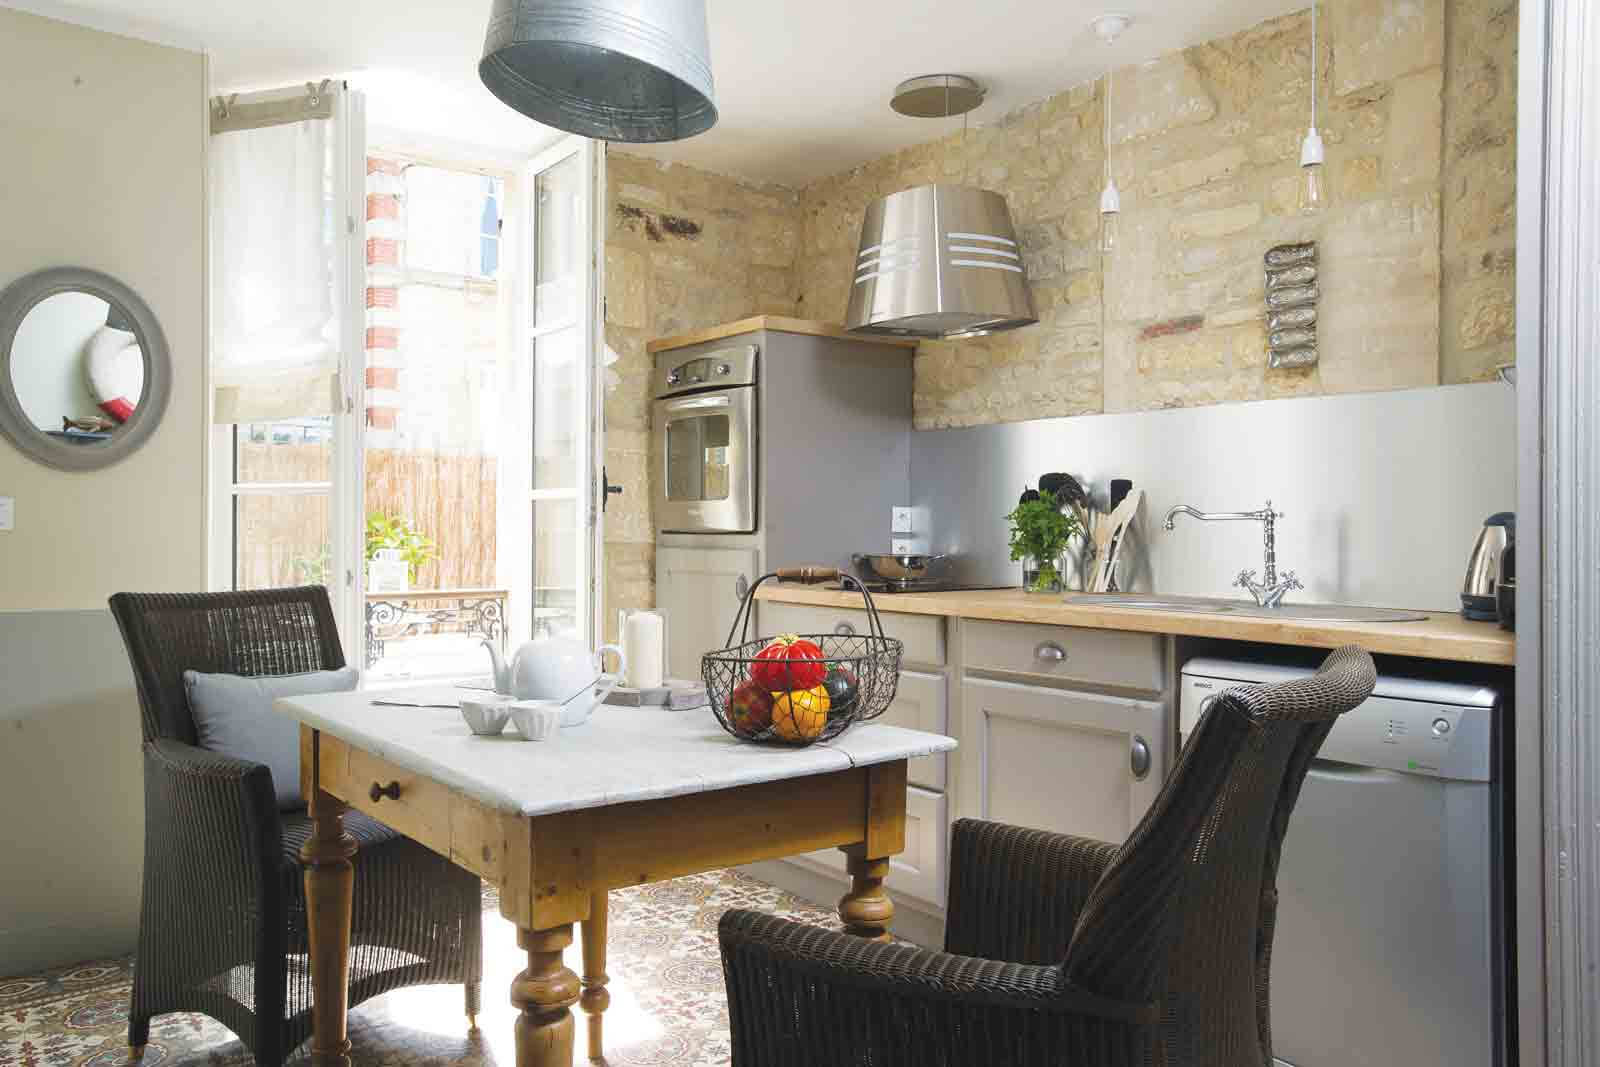 Harbor Apartment, Port-en-Bessin, Normandy France | vacation homes for rent